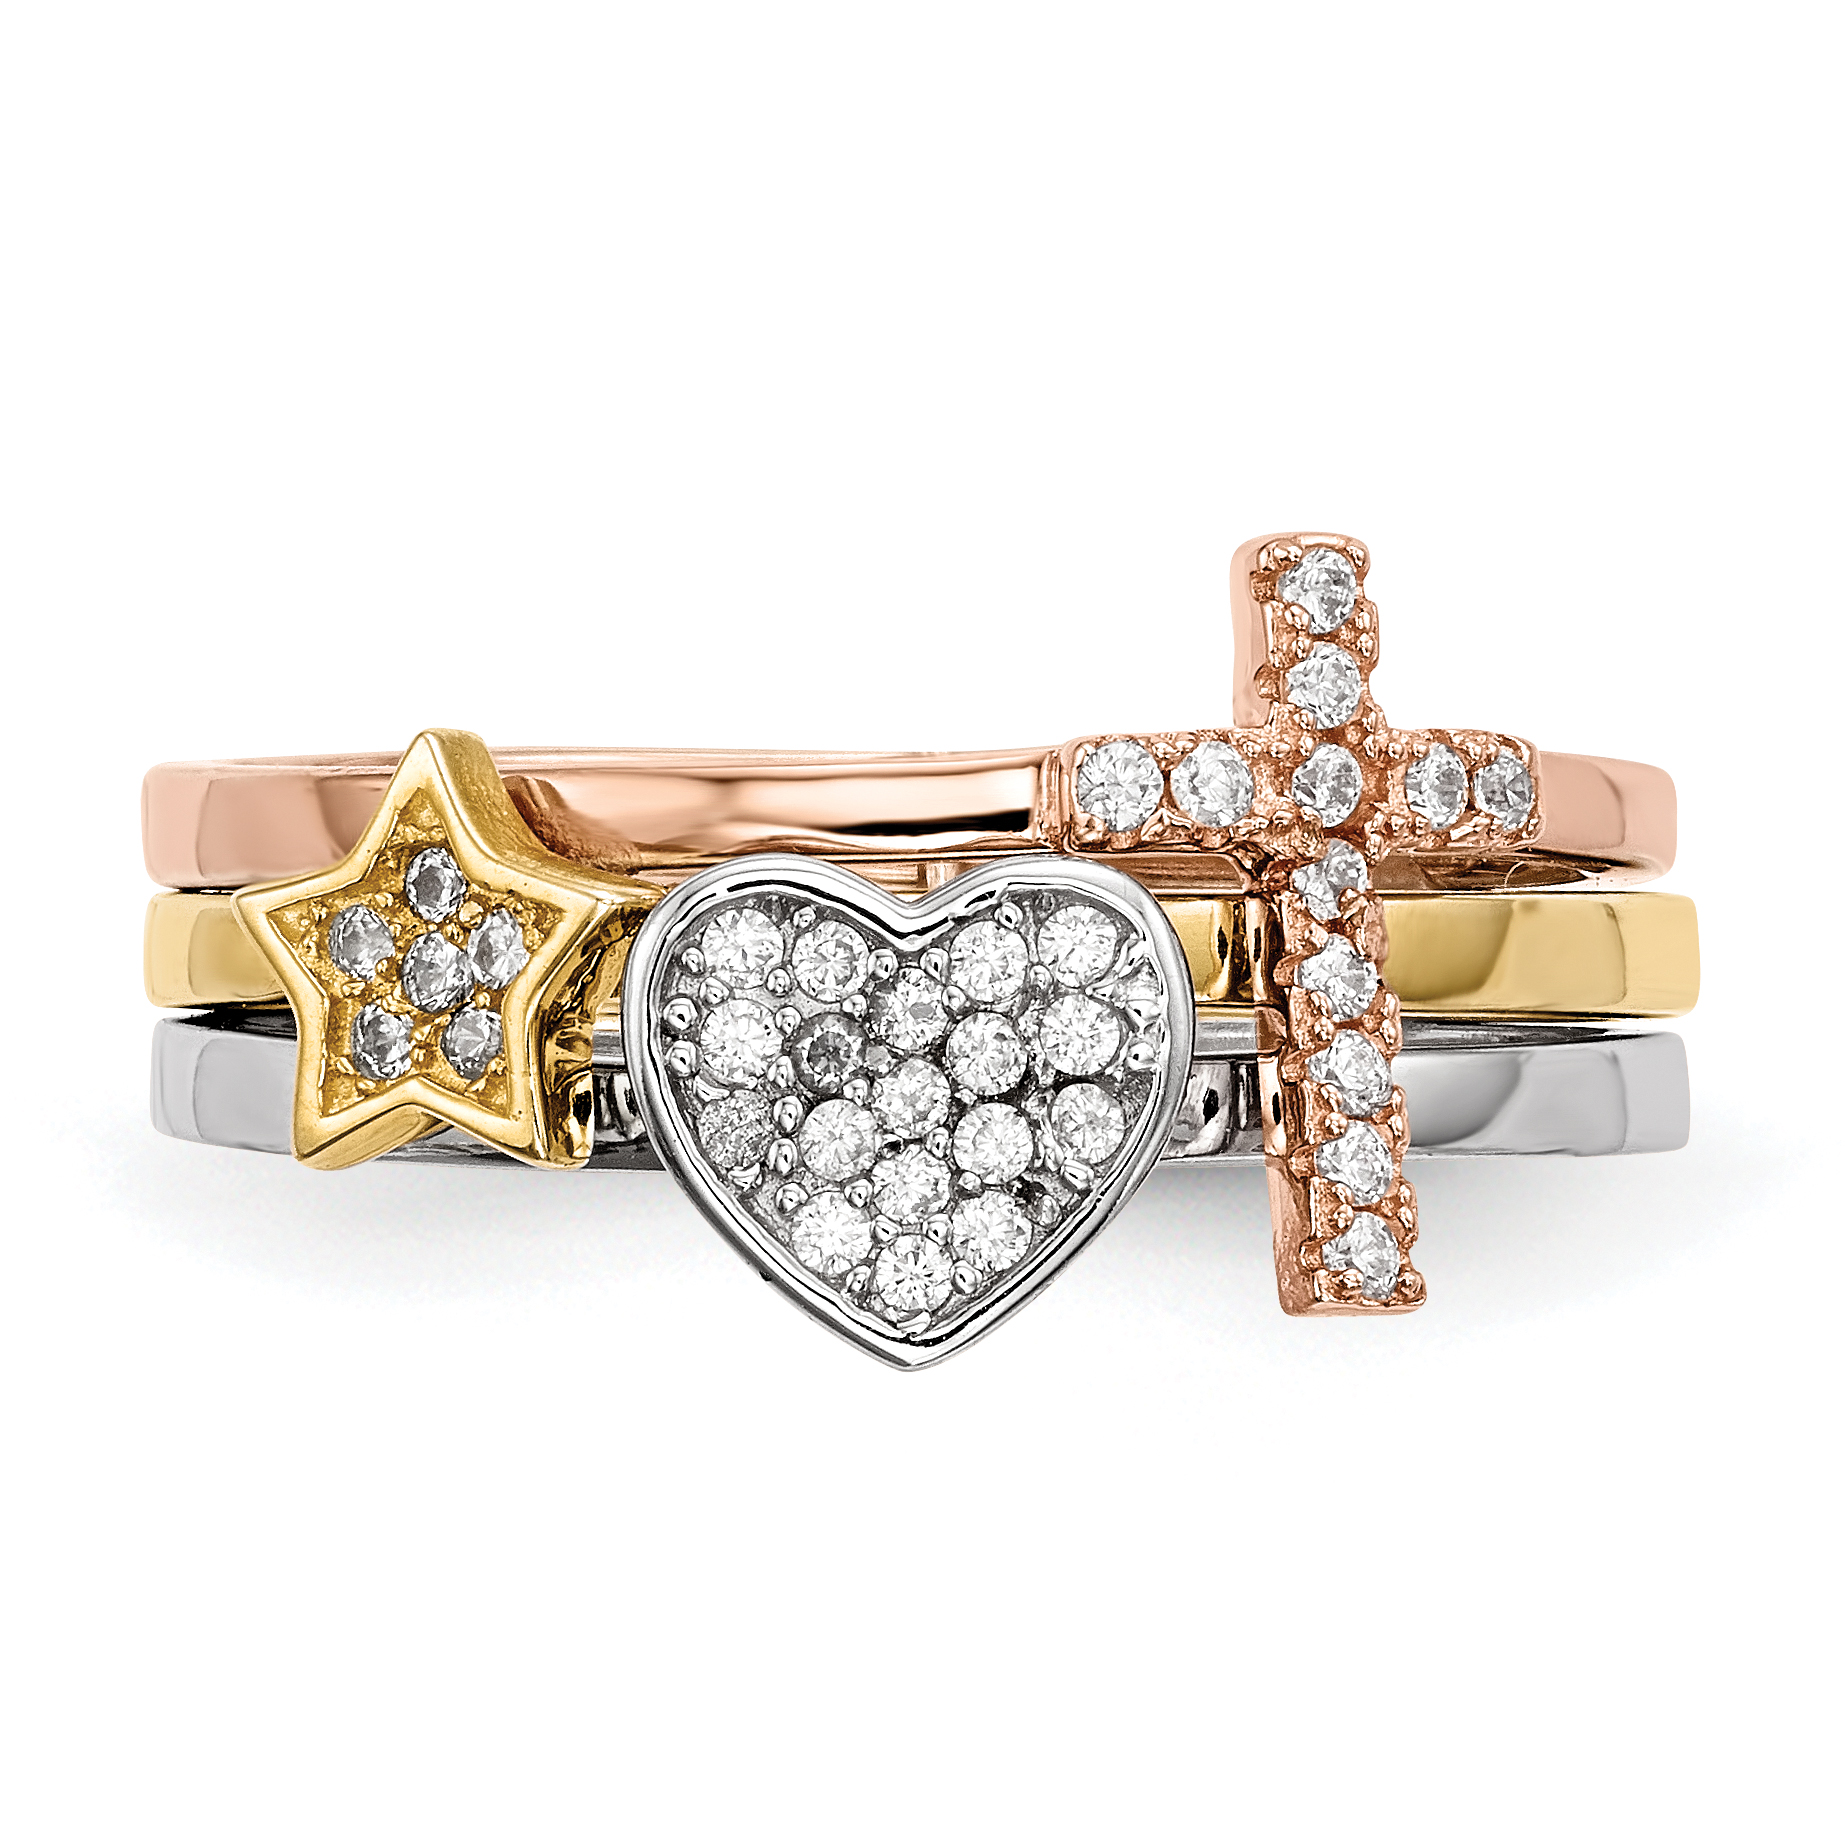 925 Sterling Silver Plate Gold Rose Tone Star Cross Religious Cubic Zirconia Cz 3 Band Ring Set Size 7.00 S/love Sun/moon/star Fine Jewelry Gifts For Women For Her - image 2 de 9